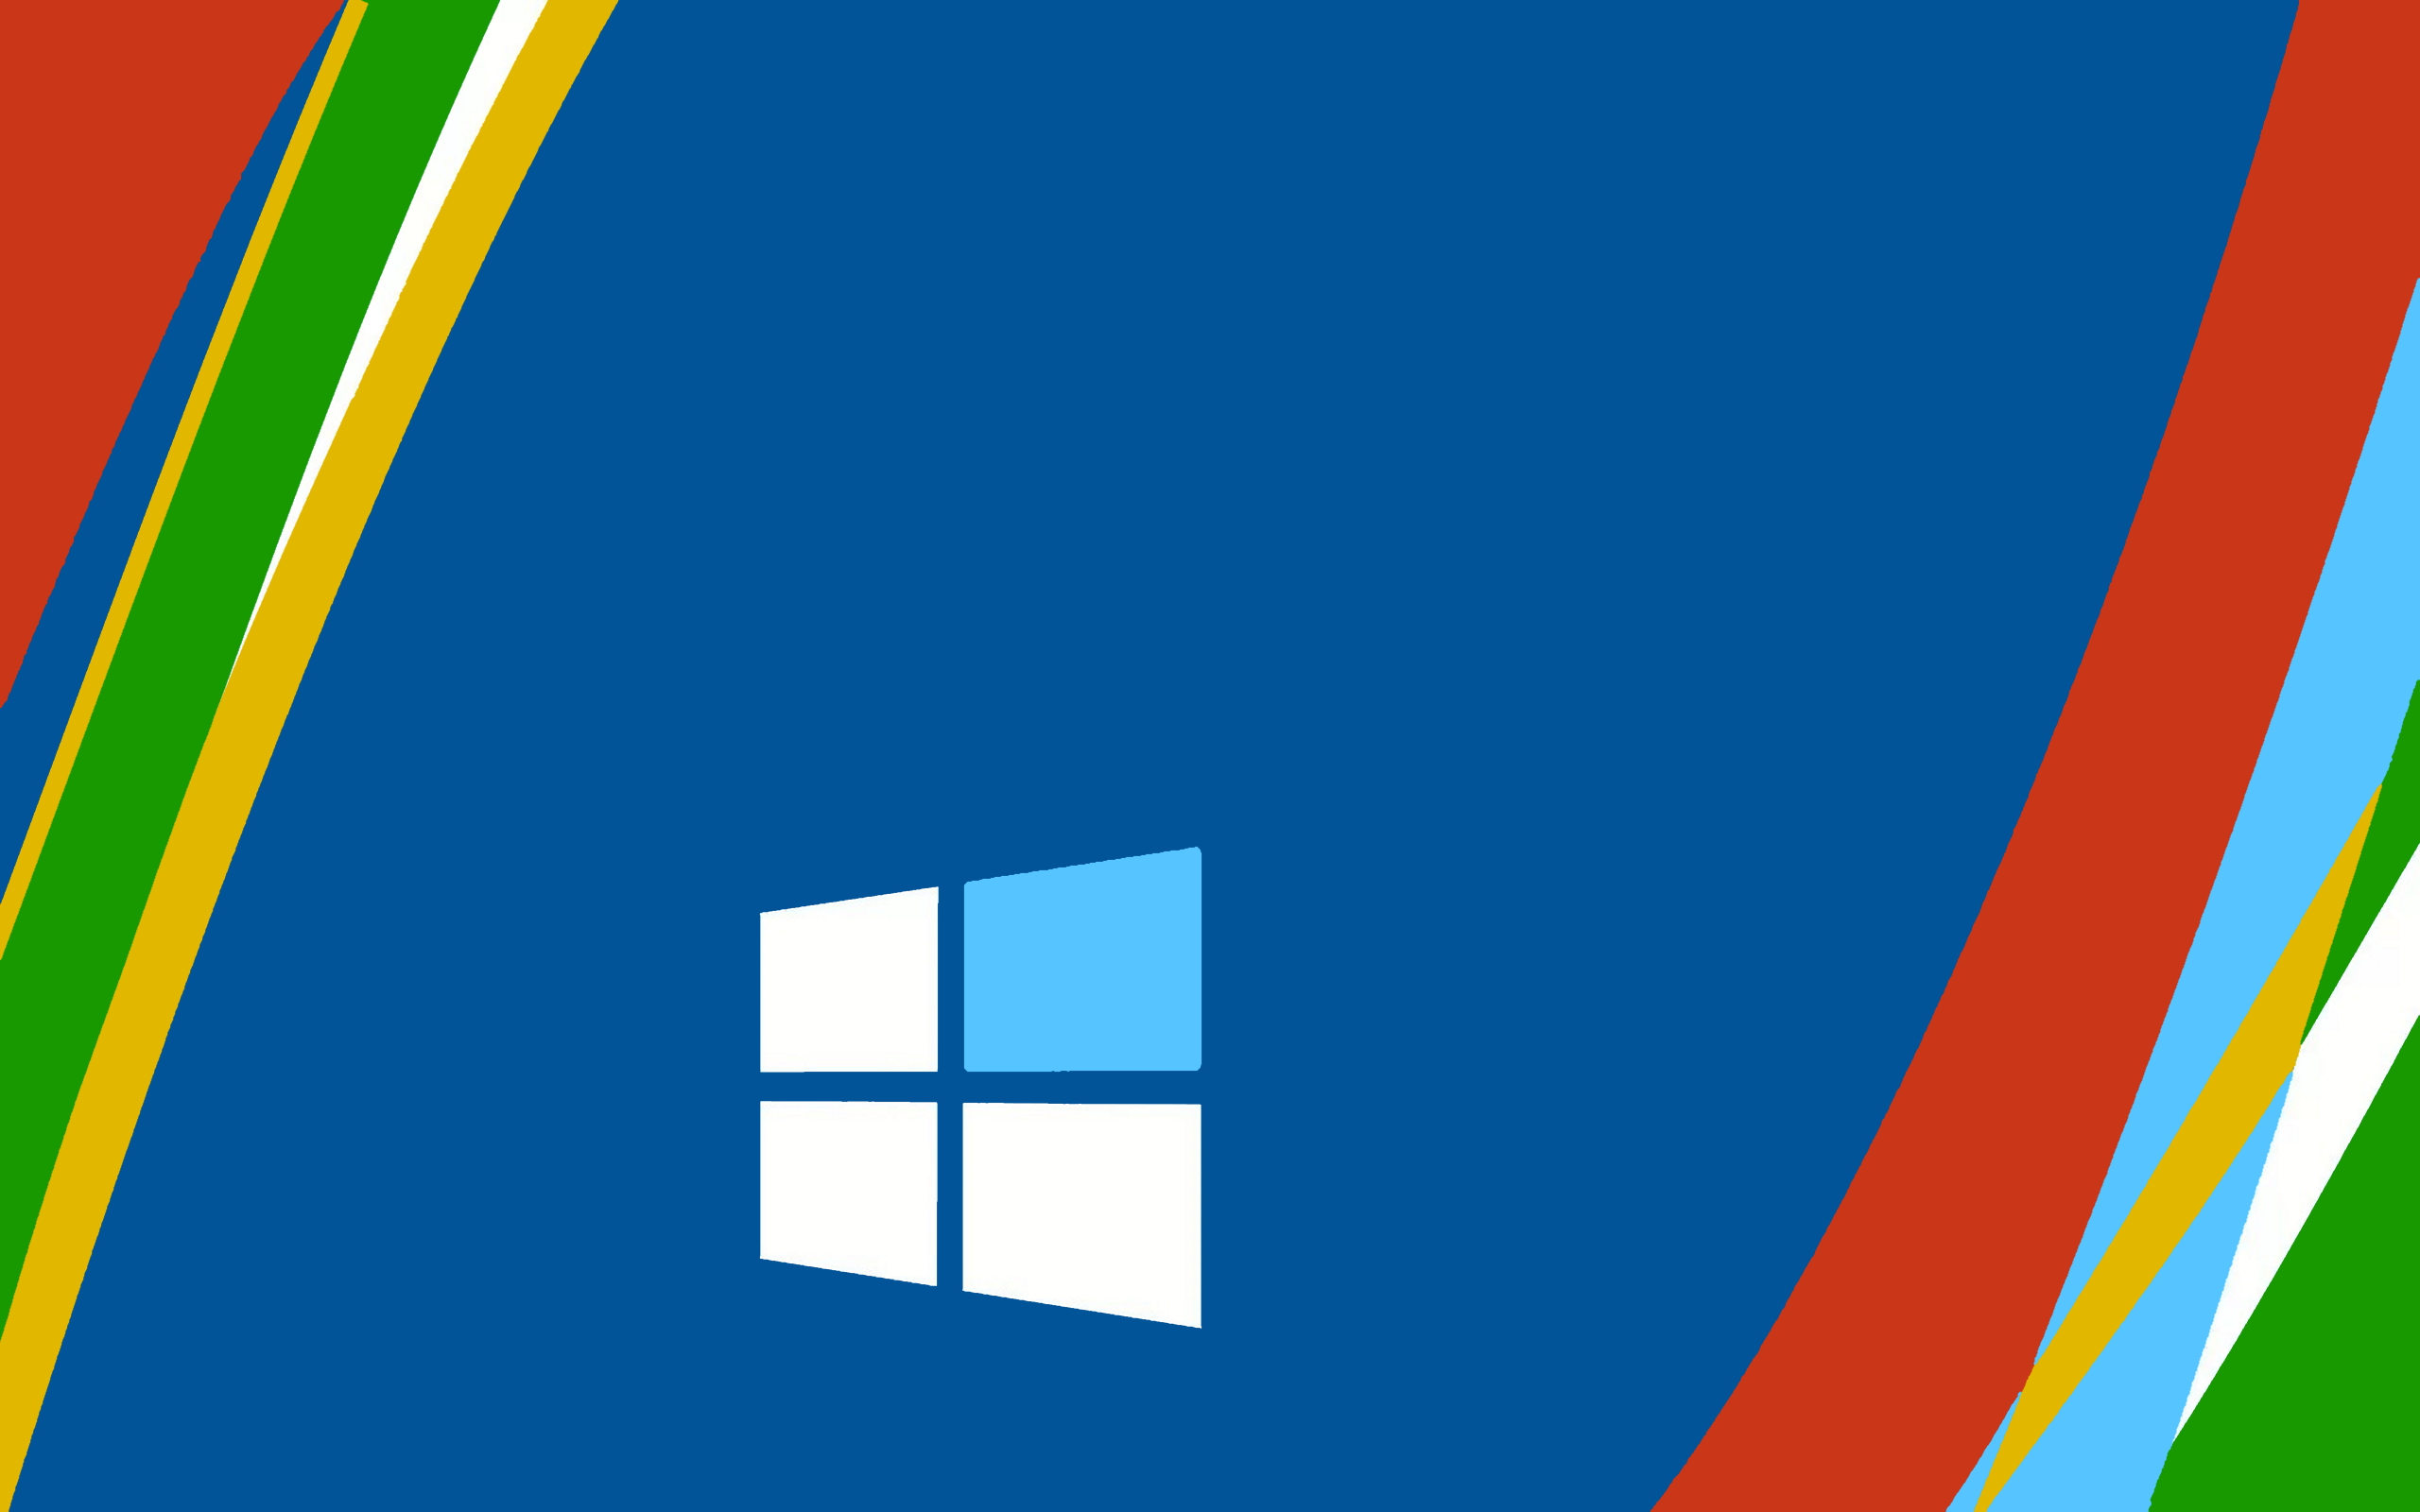 colorful windows 10 wide wallpaper 49907